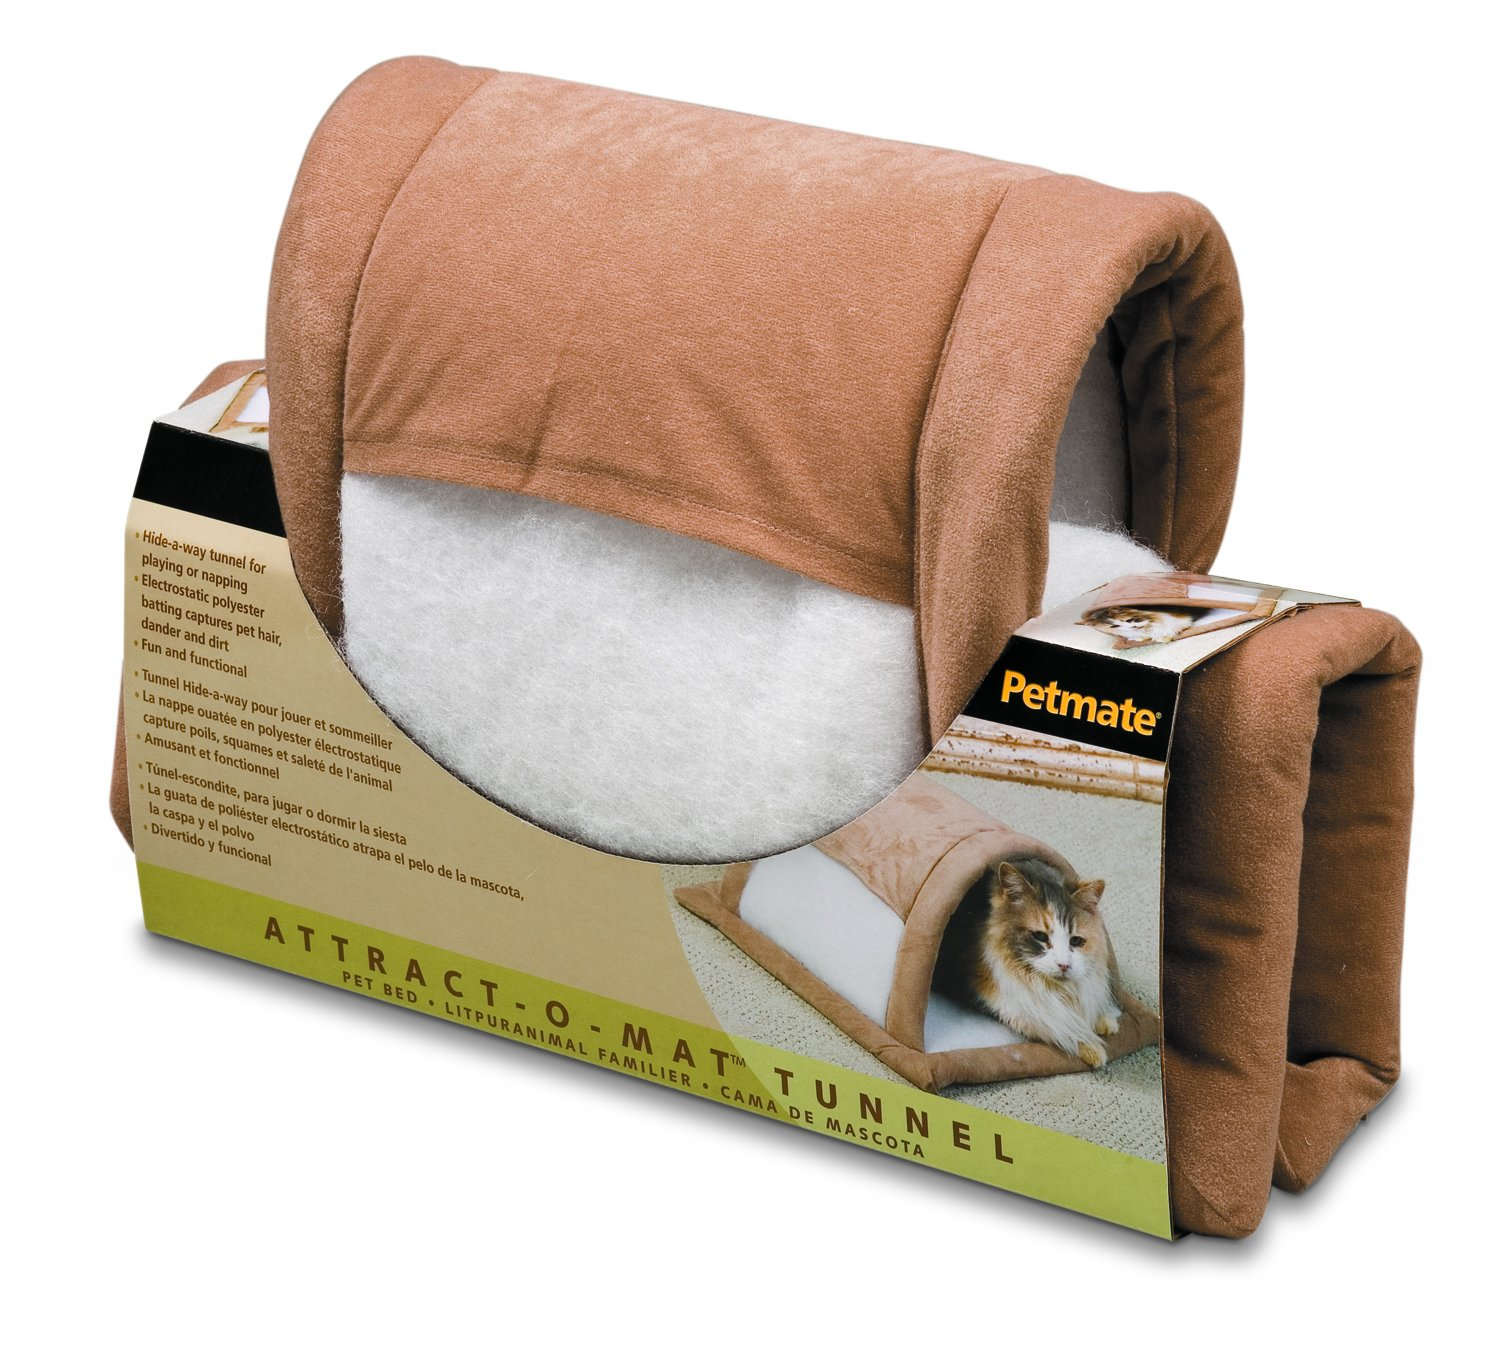 B000TYXNAQ ASPEN PET ATTRACT-O-MAT TUNNEL SLEEVE 81DnHyZSK9L